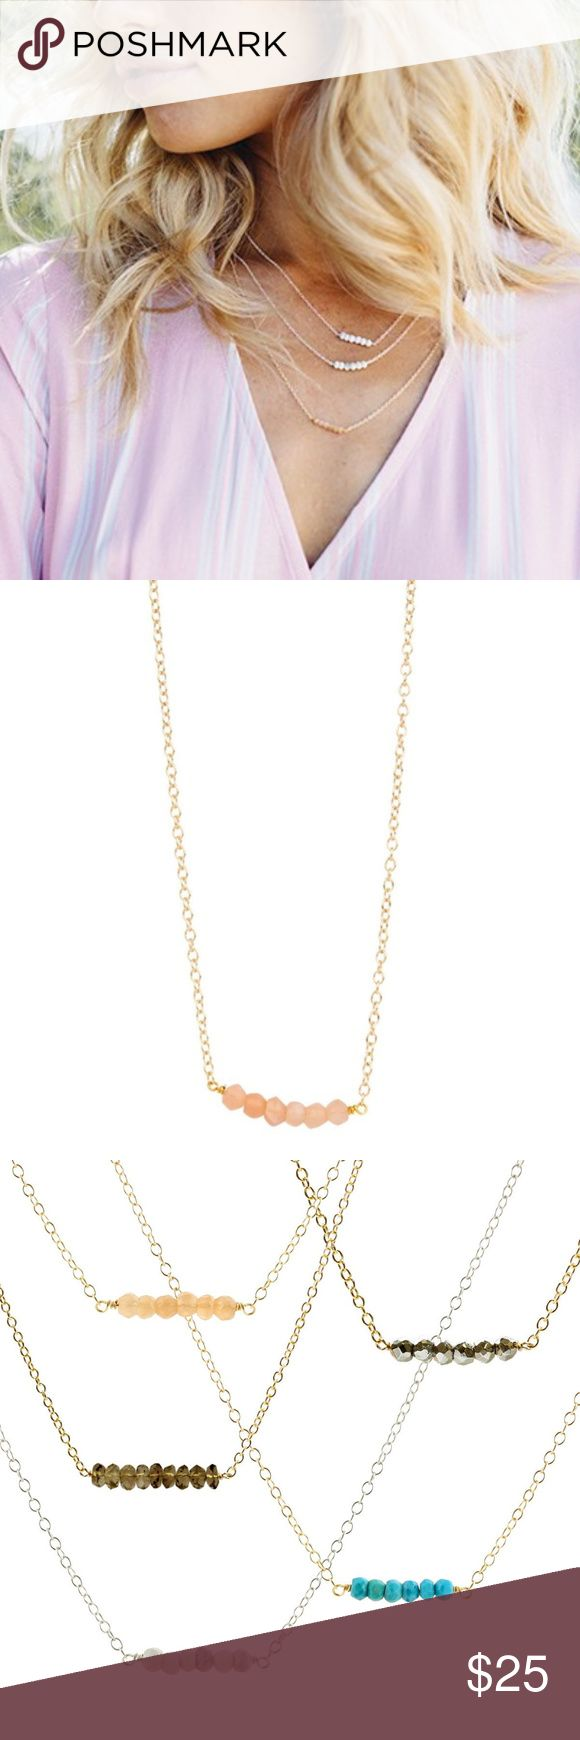 """Kris Nations Mystic Bar Moonstone Peach Necklace This necklace is a gem (literally)! The stones are hand-cut by craftsmen in India and each one has an attribute that helps you live every day with positive intentions. 18K Gold Overlay. Adjustable 16-18"""". You are getting the PEACH necklace ONLY. Shown styled! Kris Nations Jewelry Necklaces"""